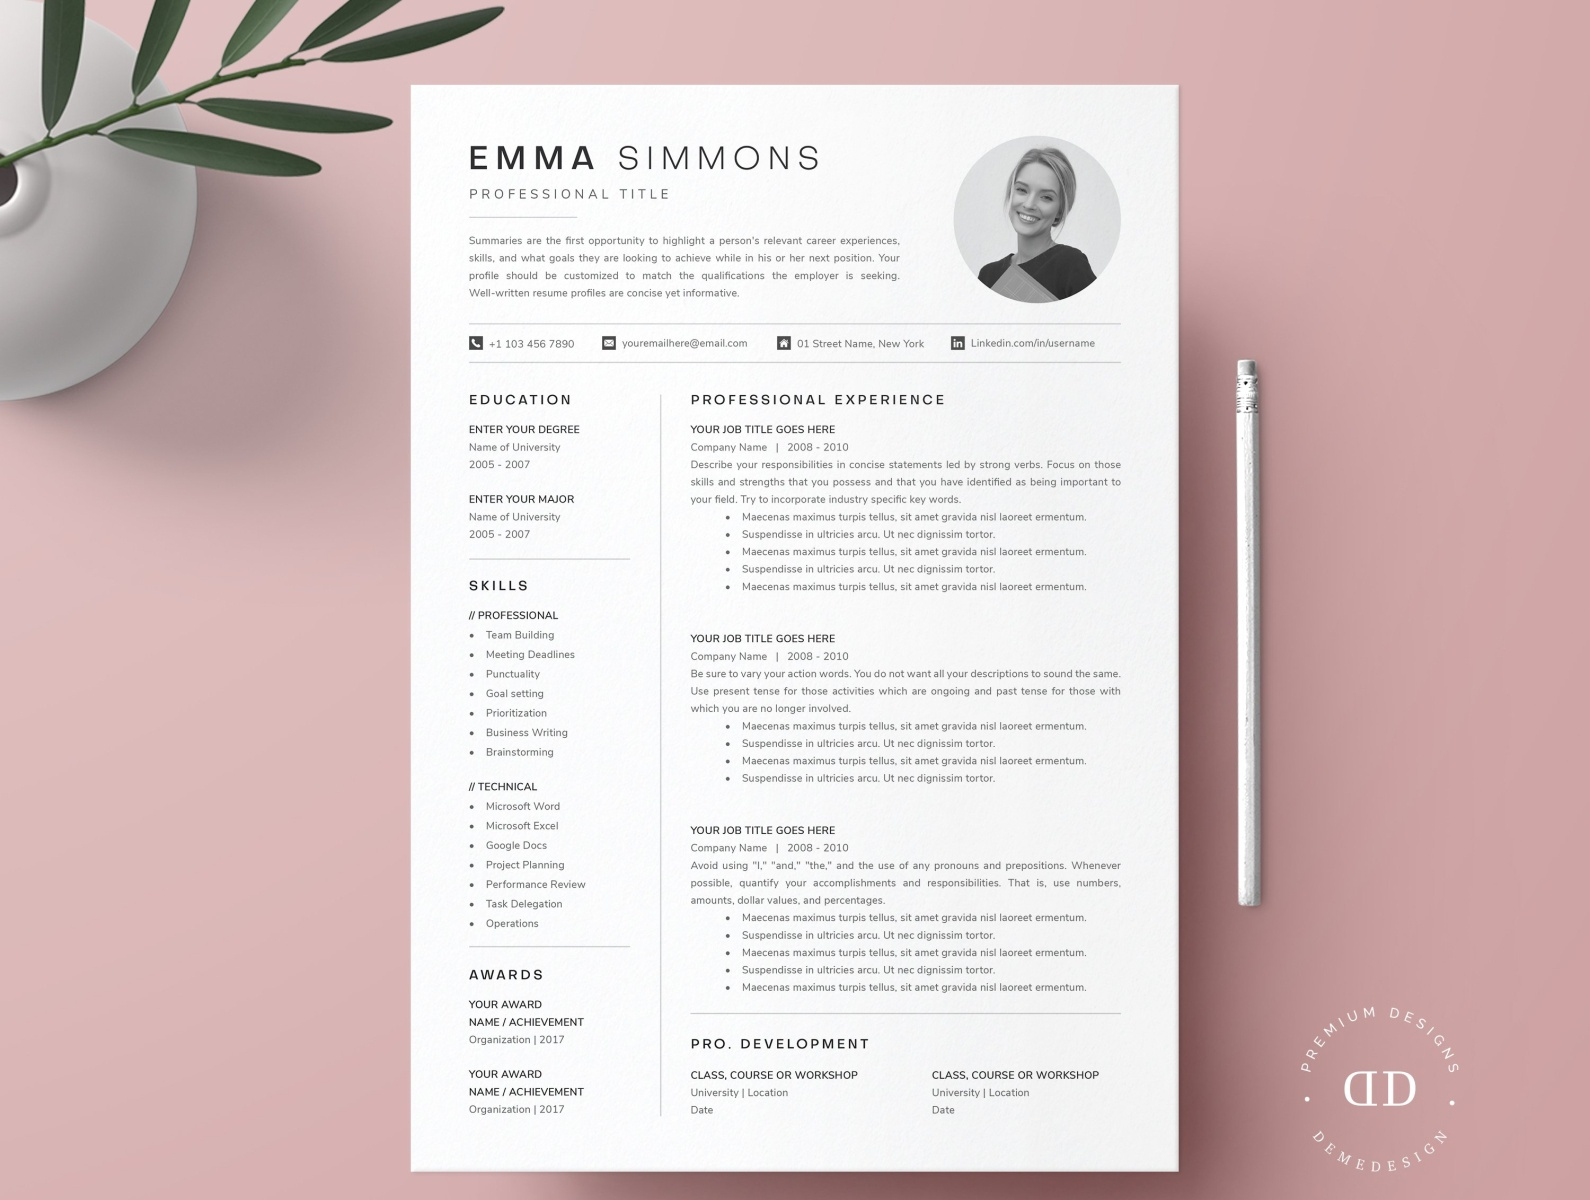 Single Page Resume Template from cdn.dribbble.com